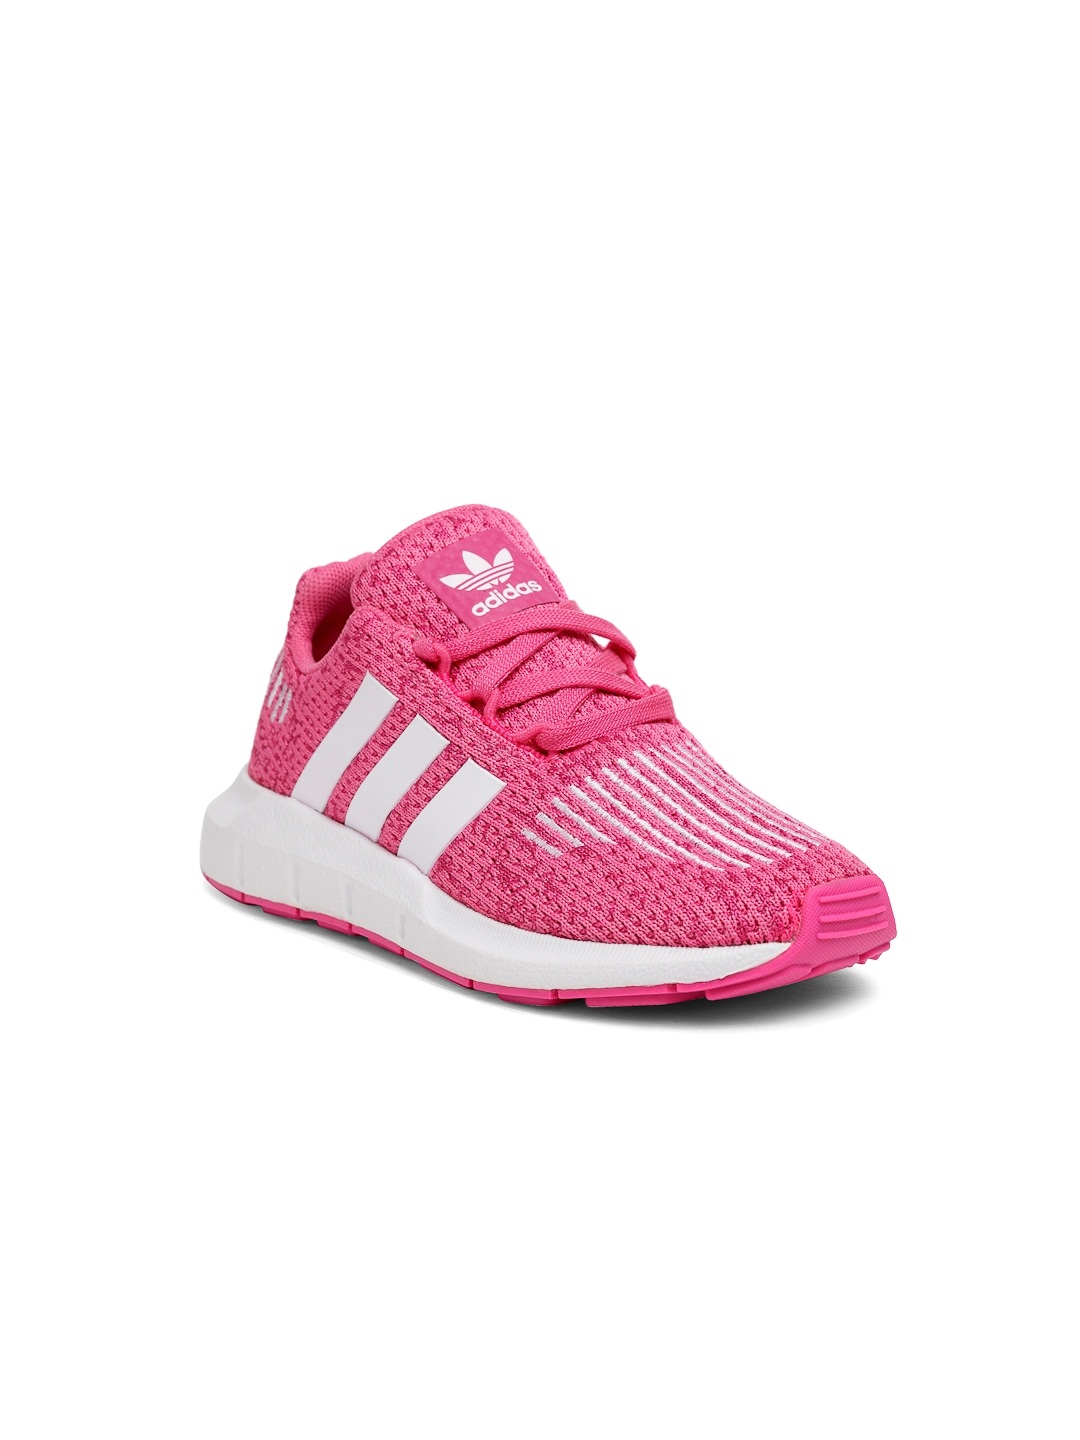 b790db9e5 Buy ADIDAS Originals Kids Pink Swift Run Running Shoes - Casual ...